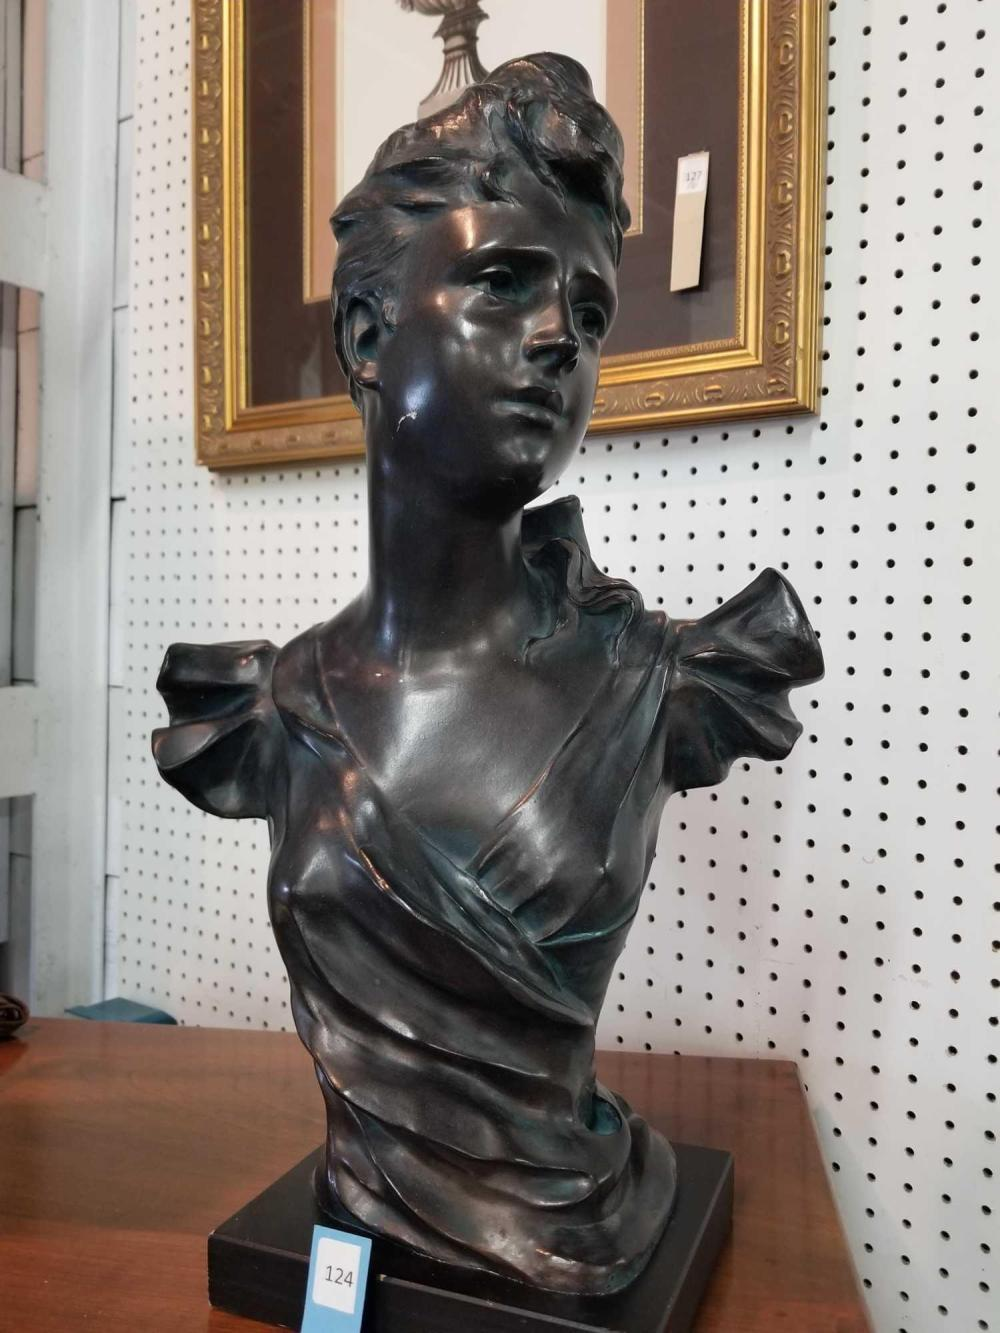 YOUNG GIRL BUST SCULPTURE BY AUSTIN